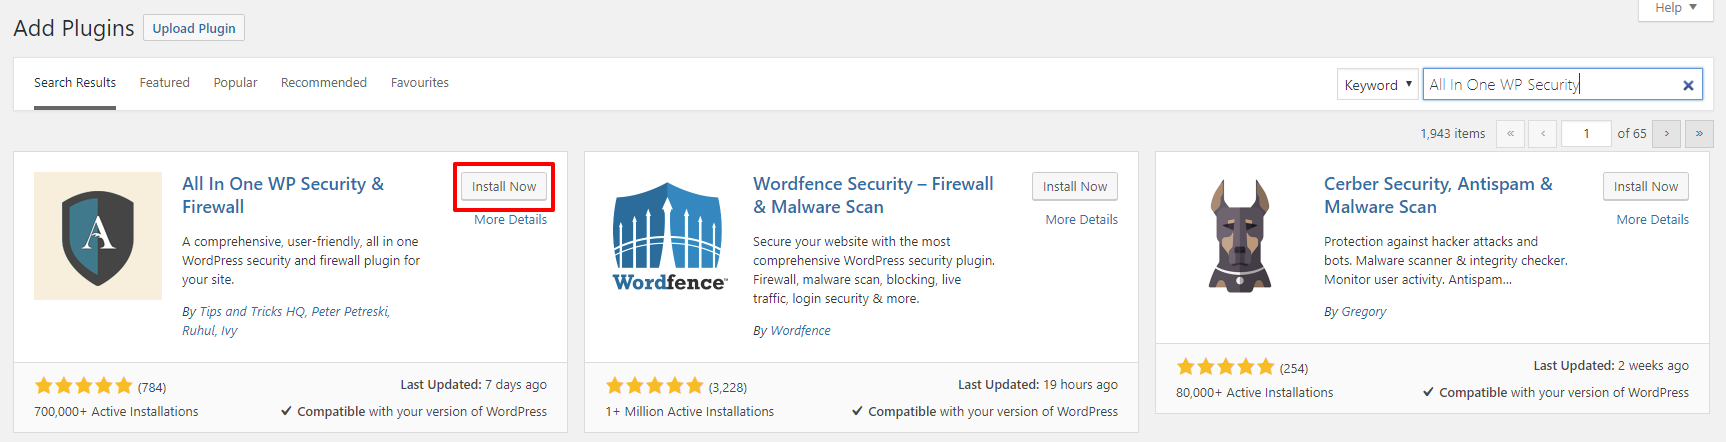 All In One WP Security & Firewall plugin | HollyPryce.com